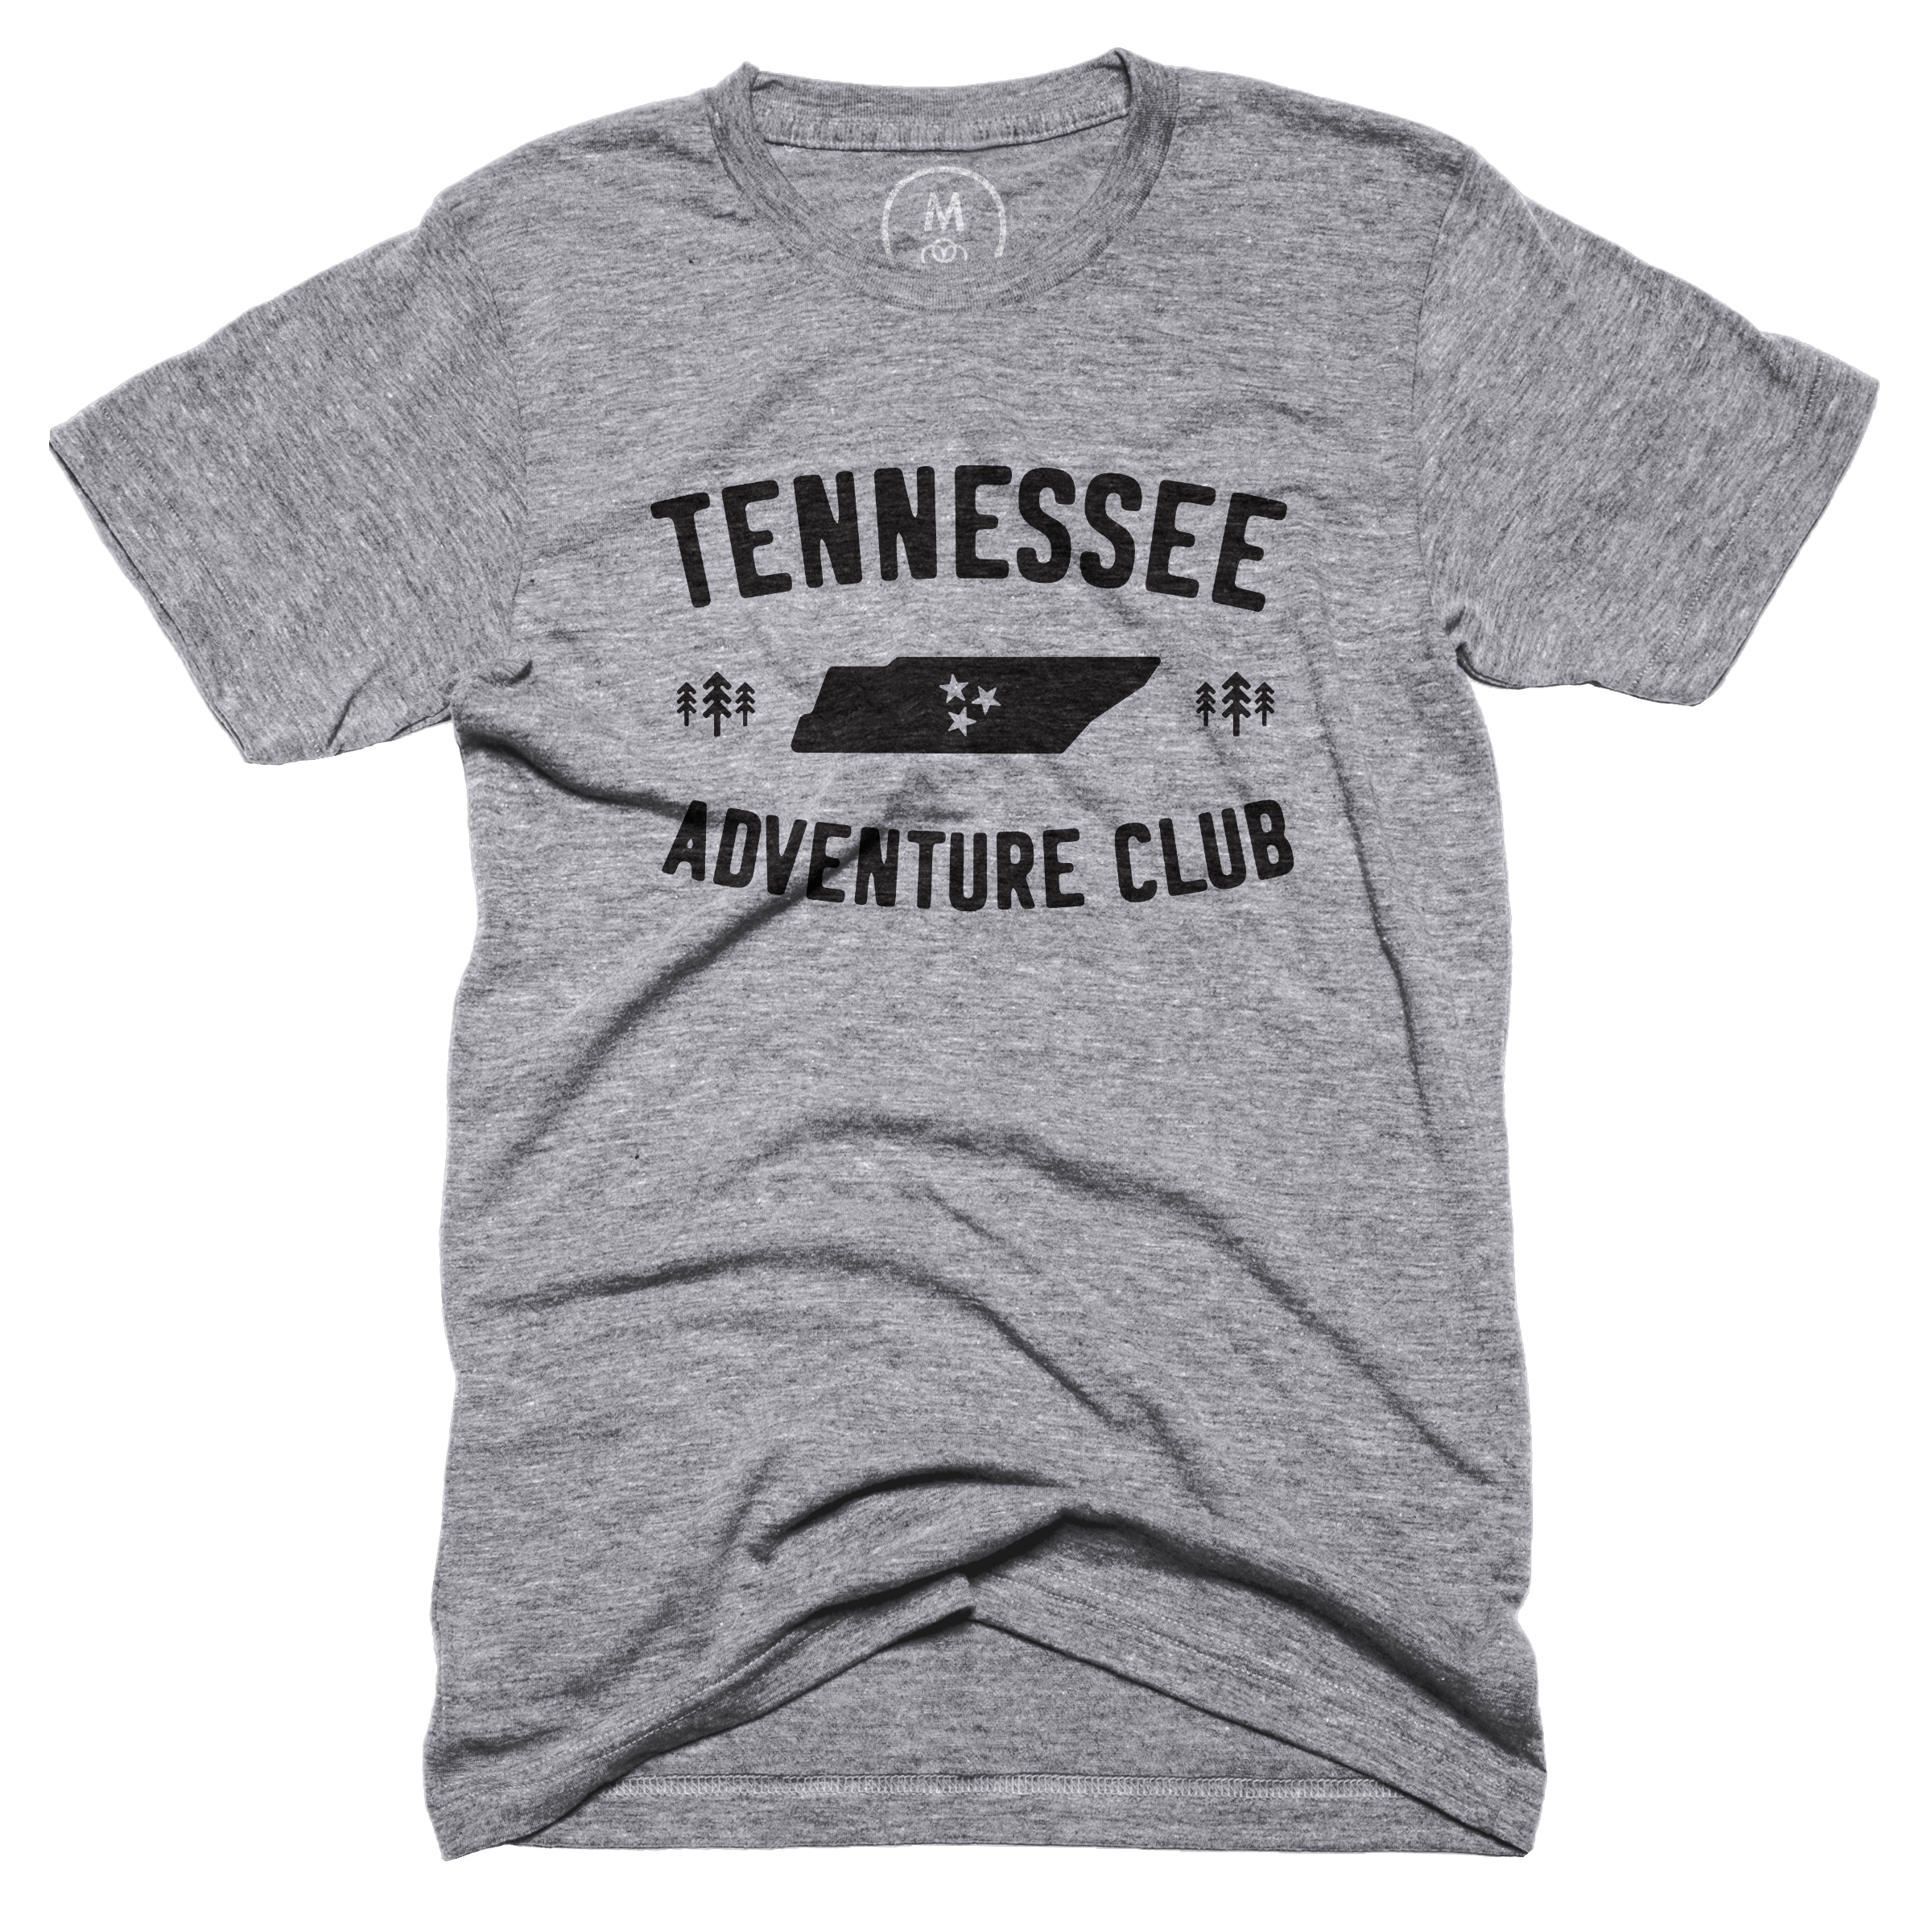 Tennessee Adventure Club